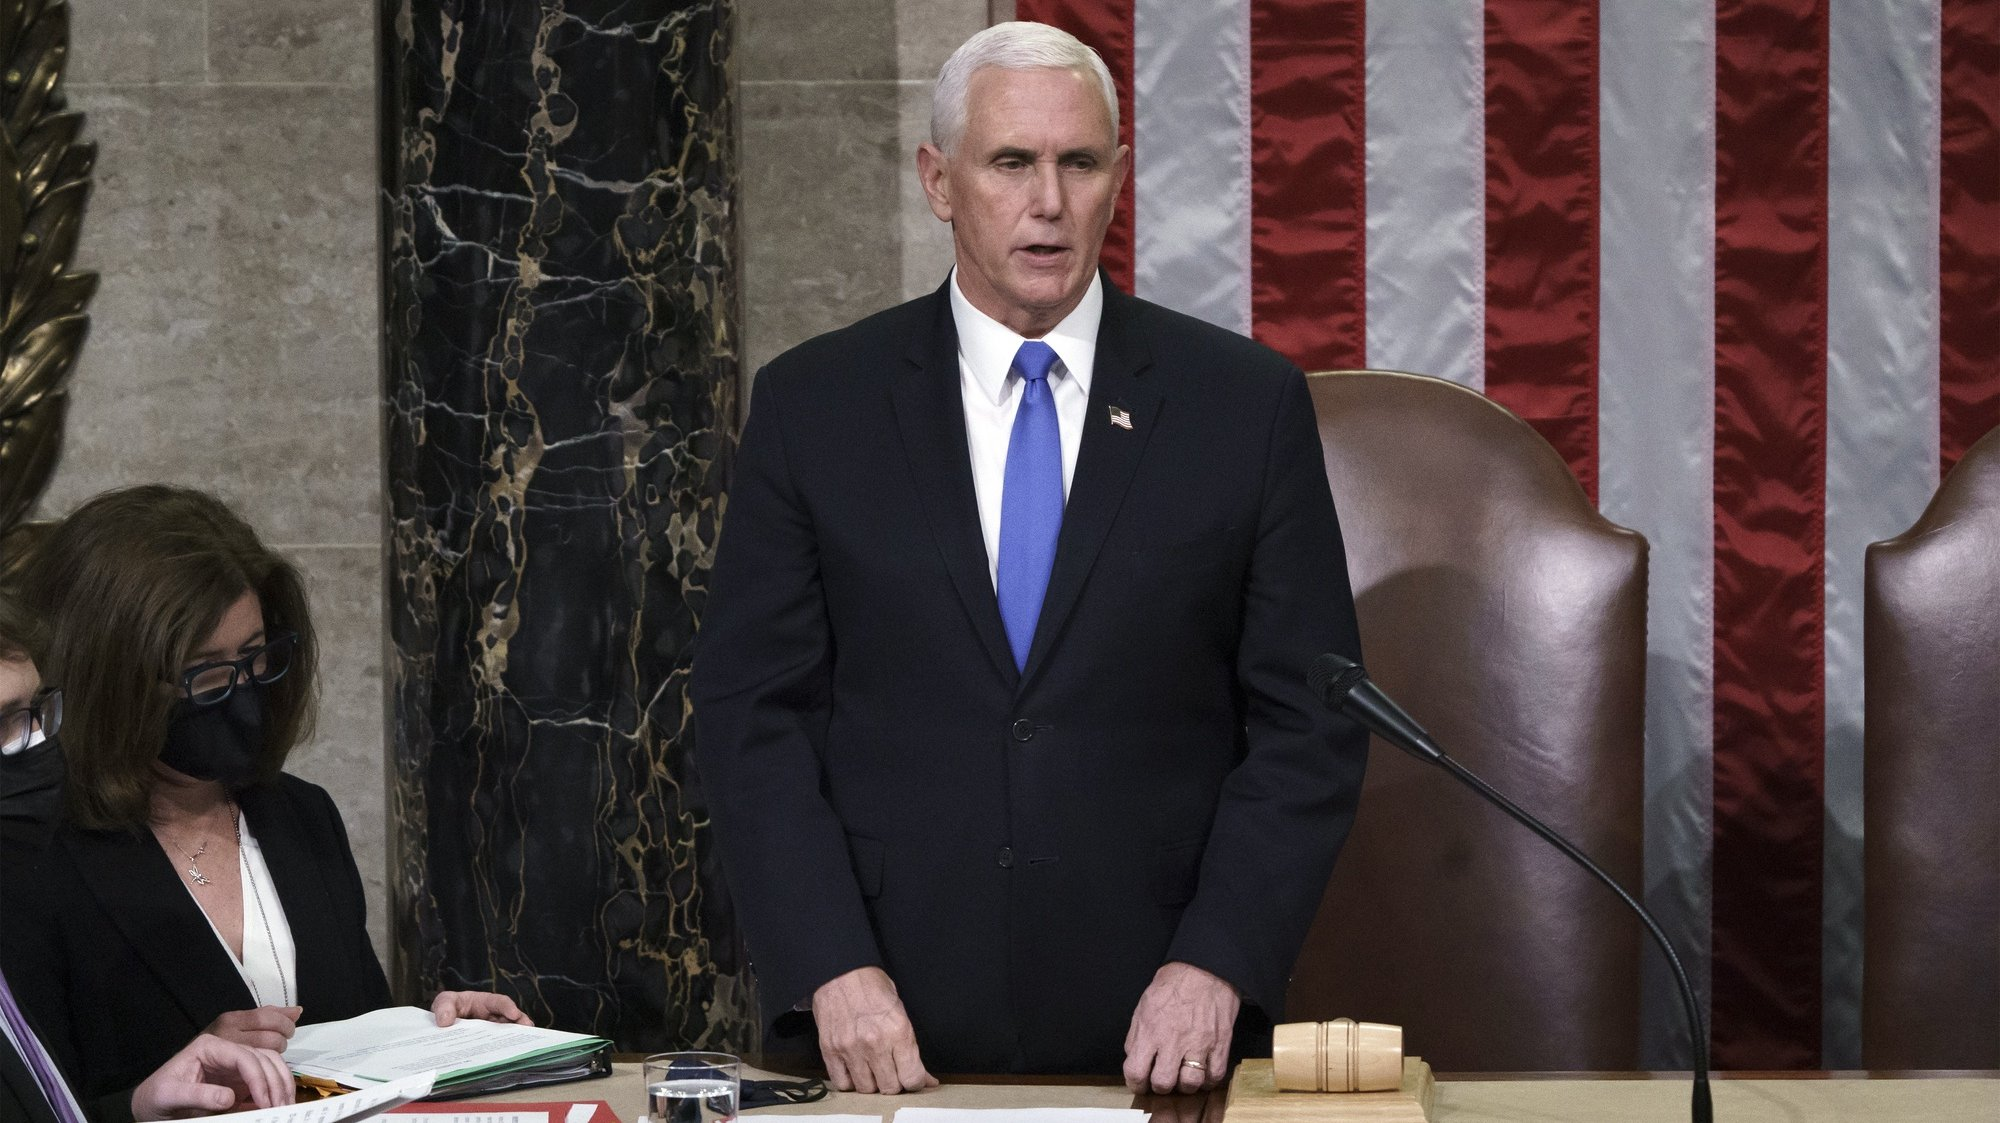 epa08924151 Vice President Mike Pence reads the final certification of Electoral College votes cast in November's presidential election during a joint session of Congress after working through the night, at the Capitol in Washington, DC, USA, 07 January 2021. Violent protesters loyal to President Donald Trump stormed the Capitol, disrupting the process.  EPA/J. Scott Applewhite / POOL  POOL